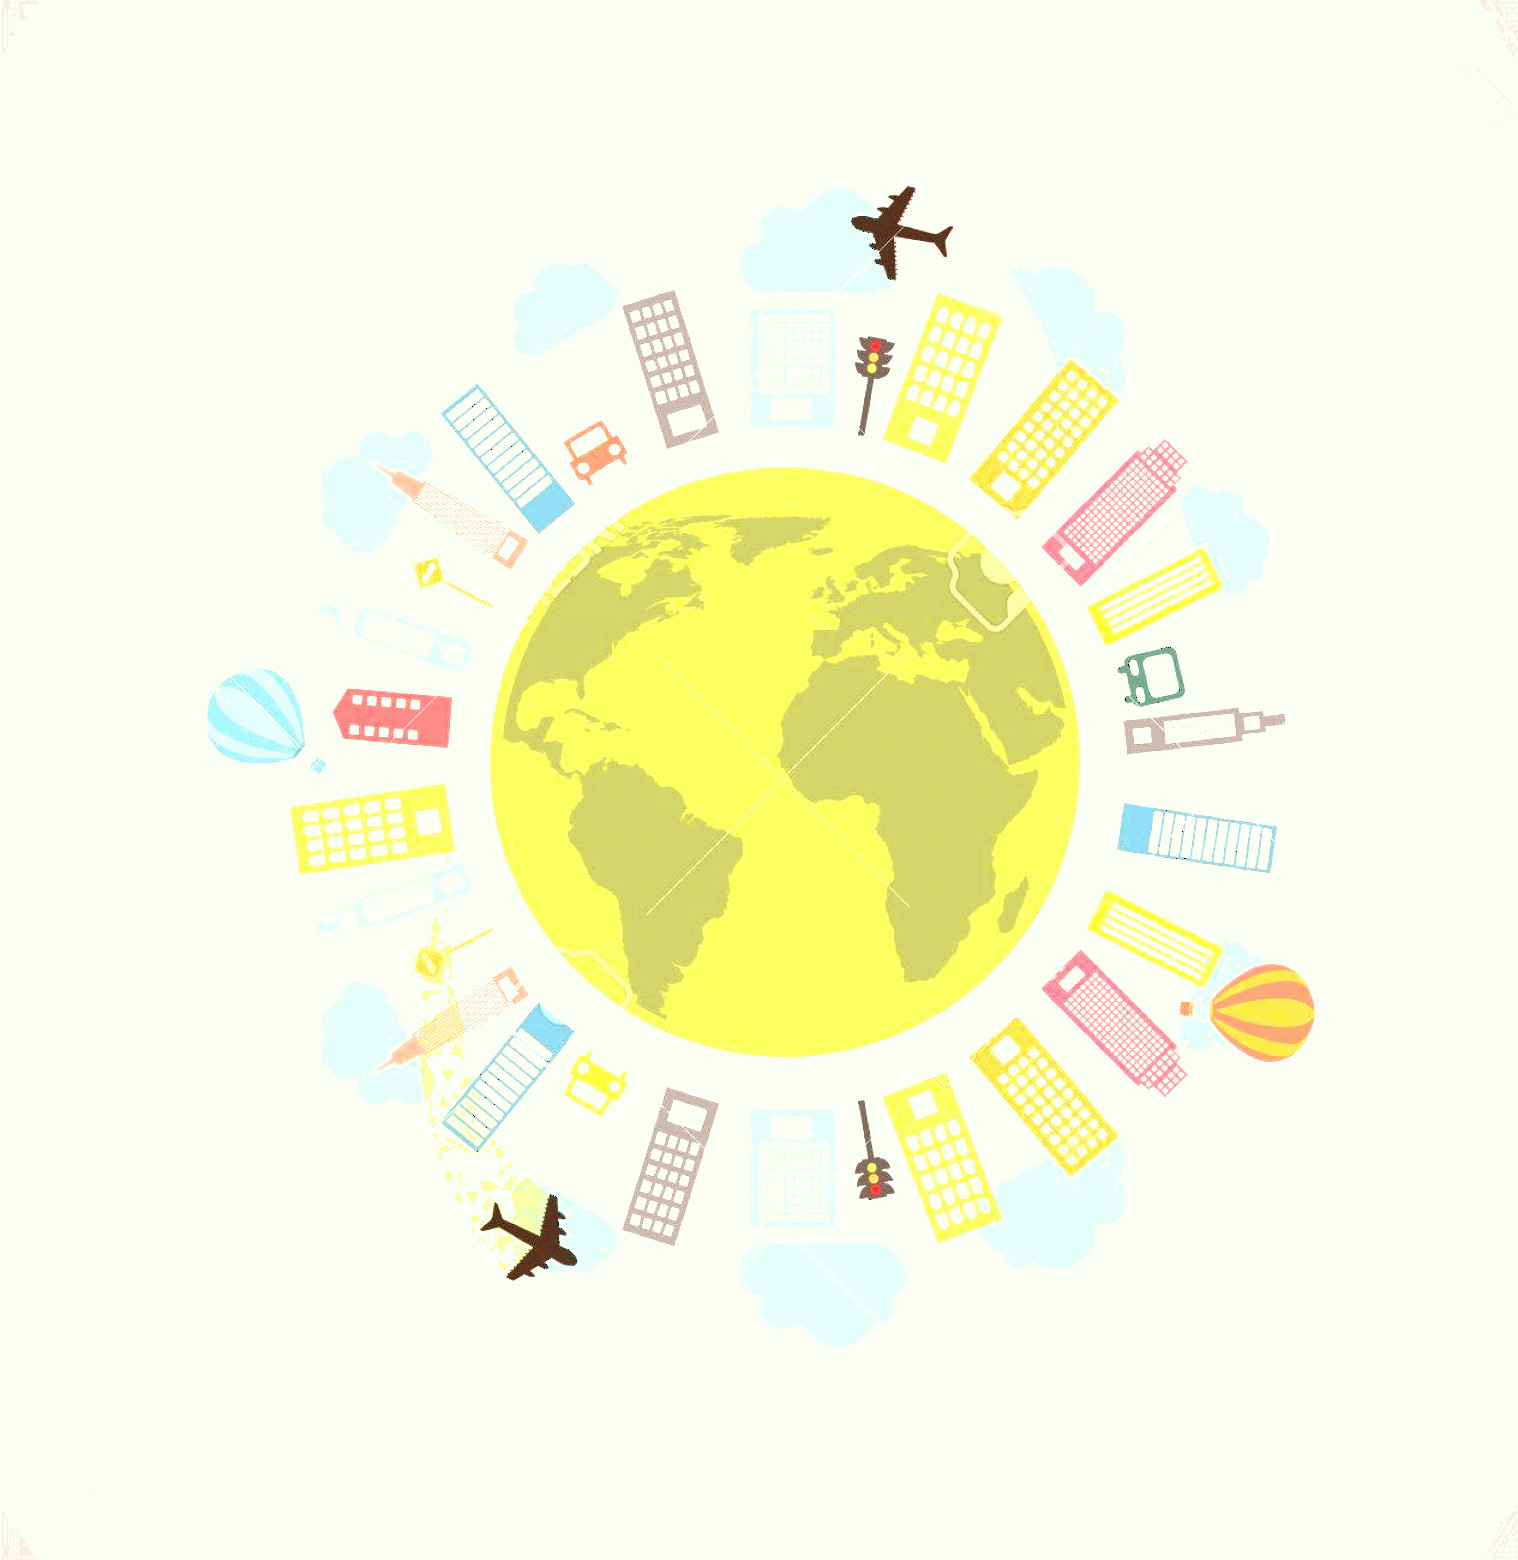 Earth With Buildings Vector: Photoplanet Earth With Buildings And Airplane Vector Illustration